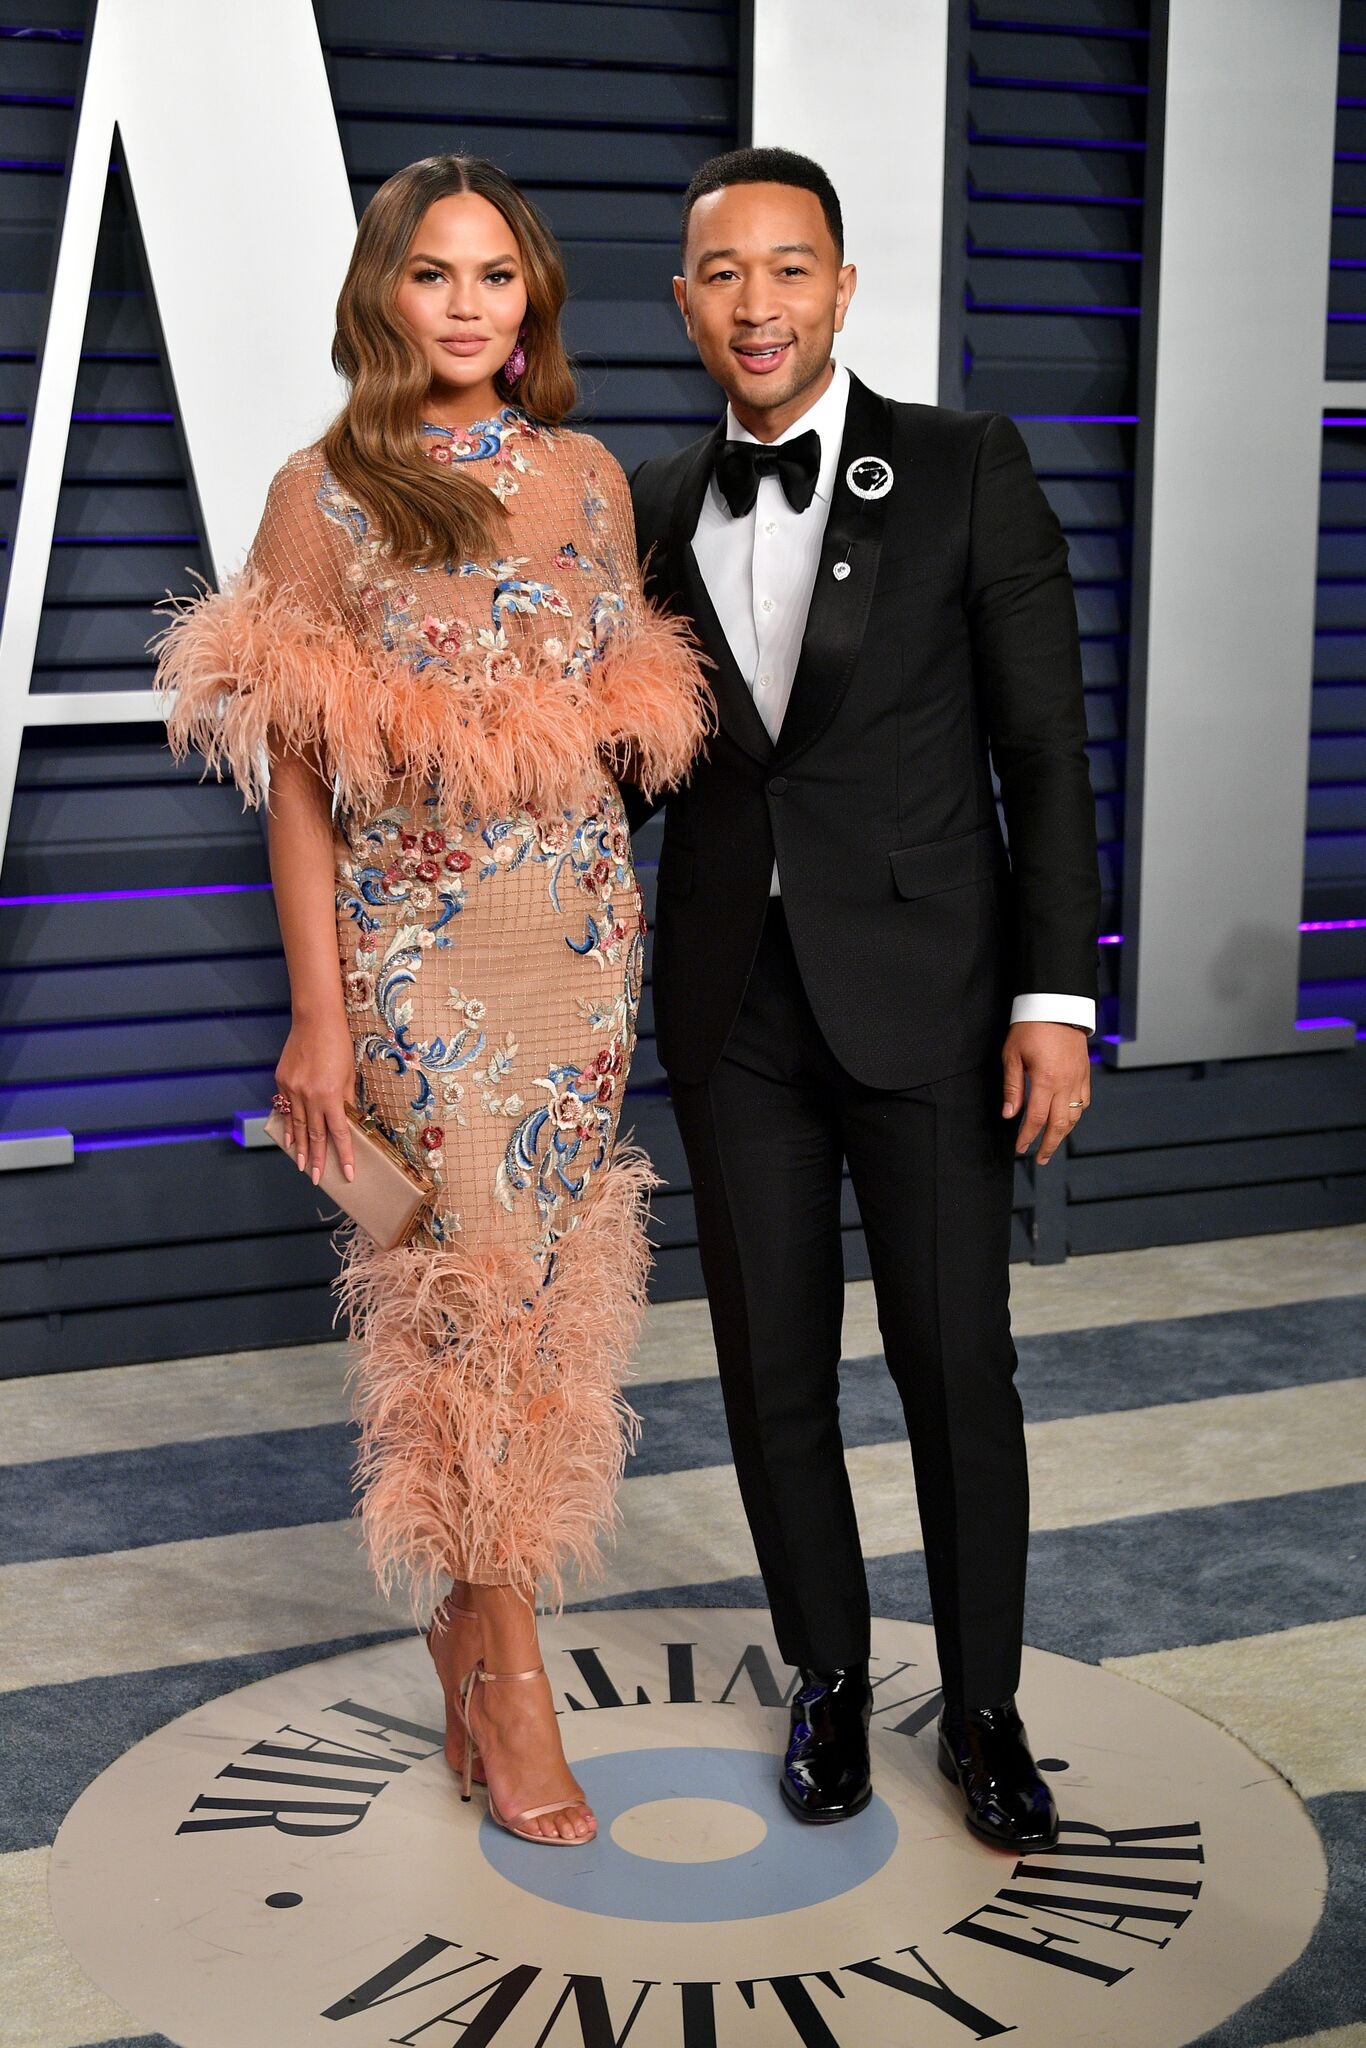 Chrissy Teigen (L) and John Legend attend the 2019 Vanity Fair Oscar Party hosted by Radhika Jones at Wallis Annenberg Center for the Performing Arts on February 24, 2019 | Photo: Getty Images